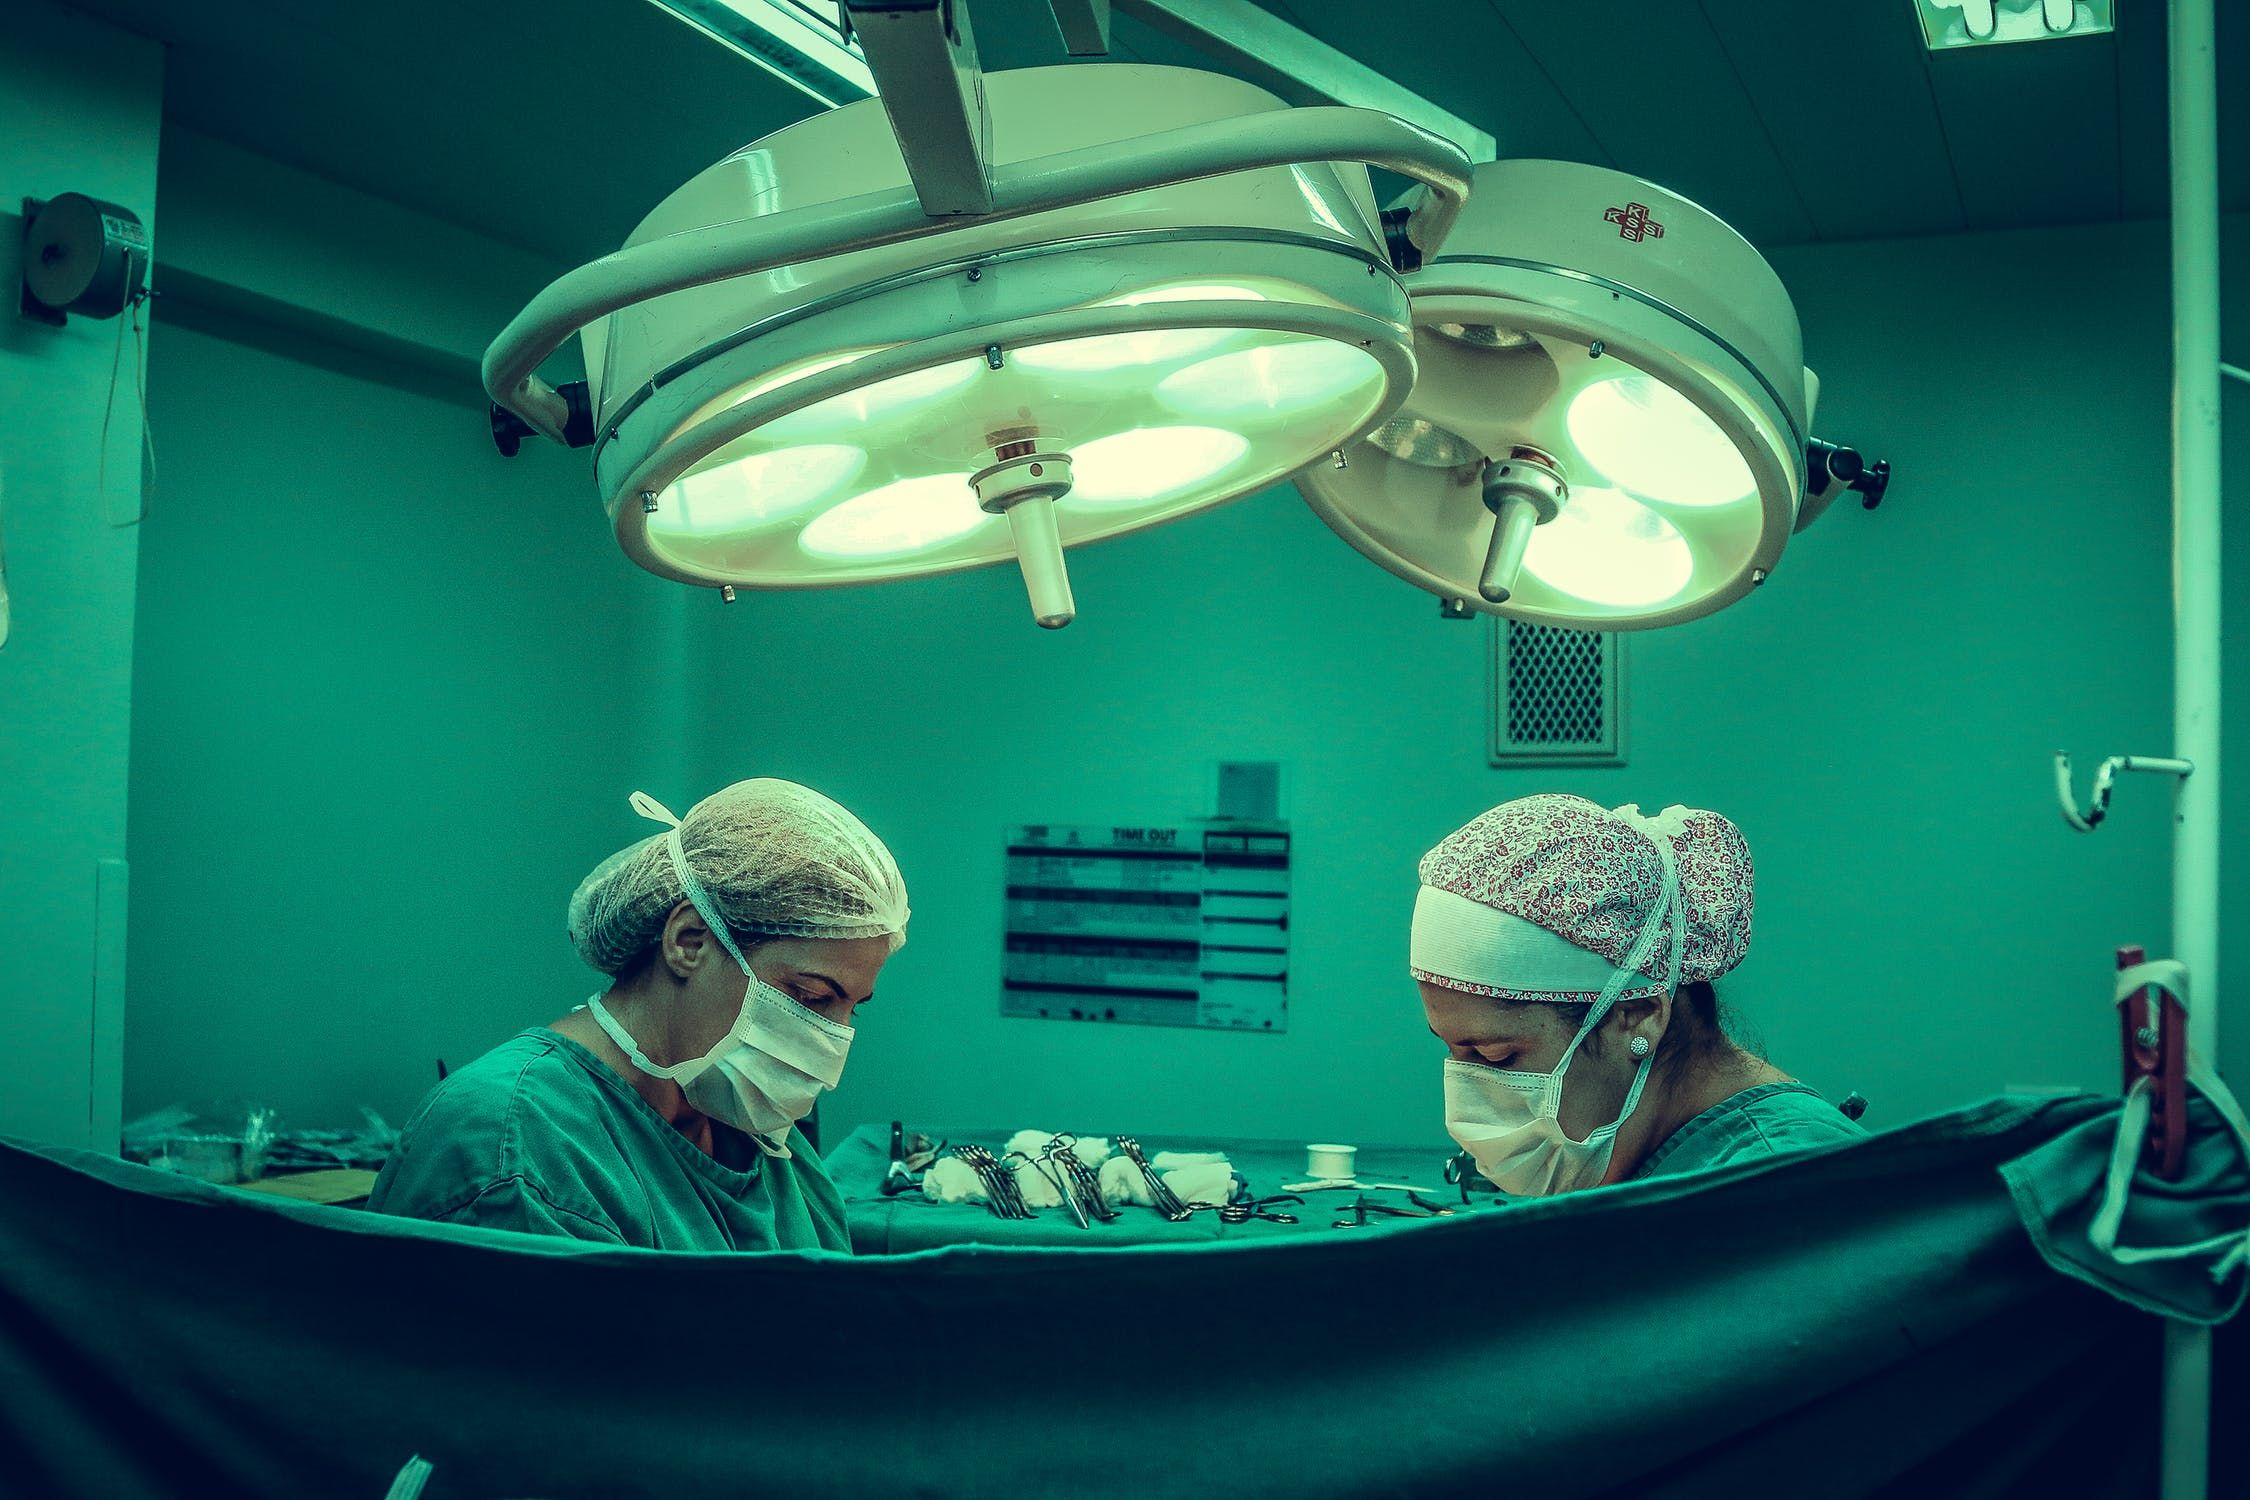 Two female surgeons about to go to work